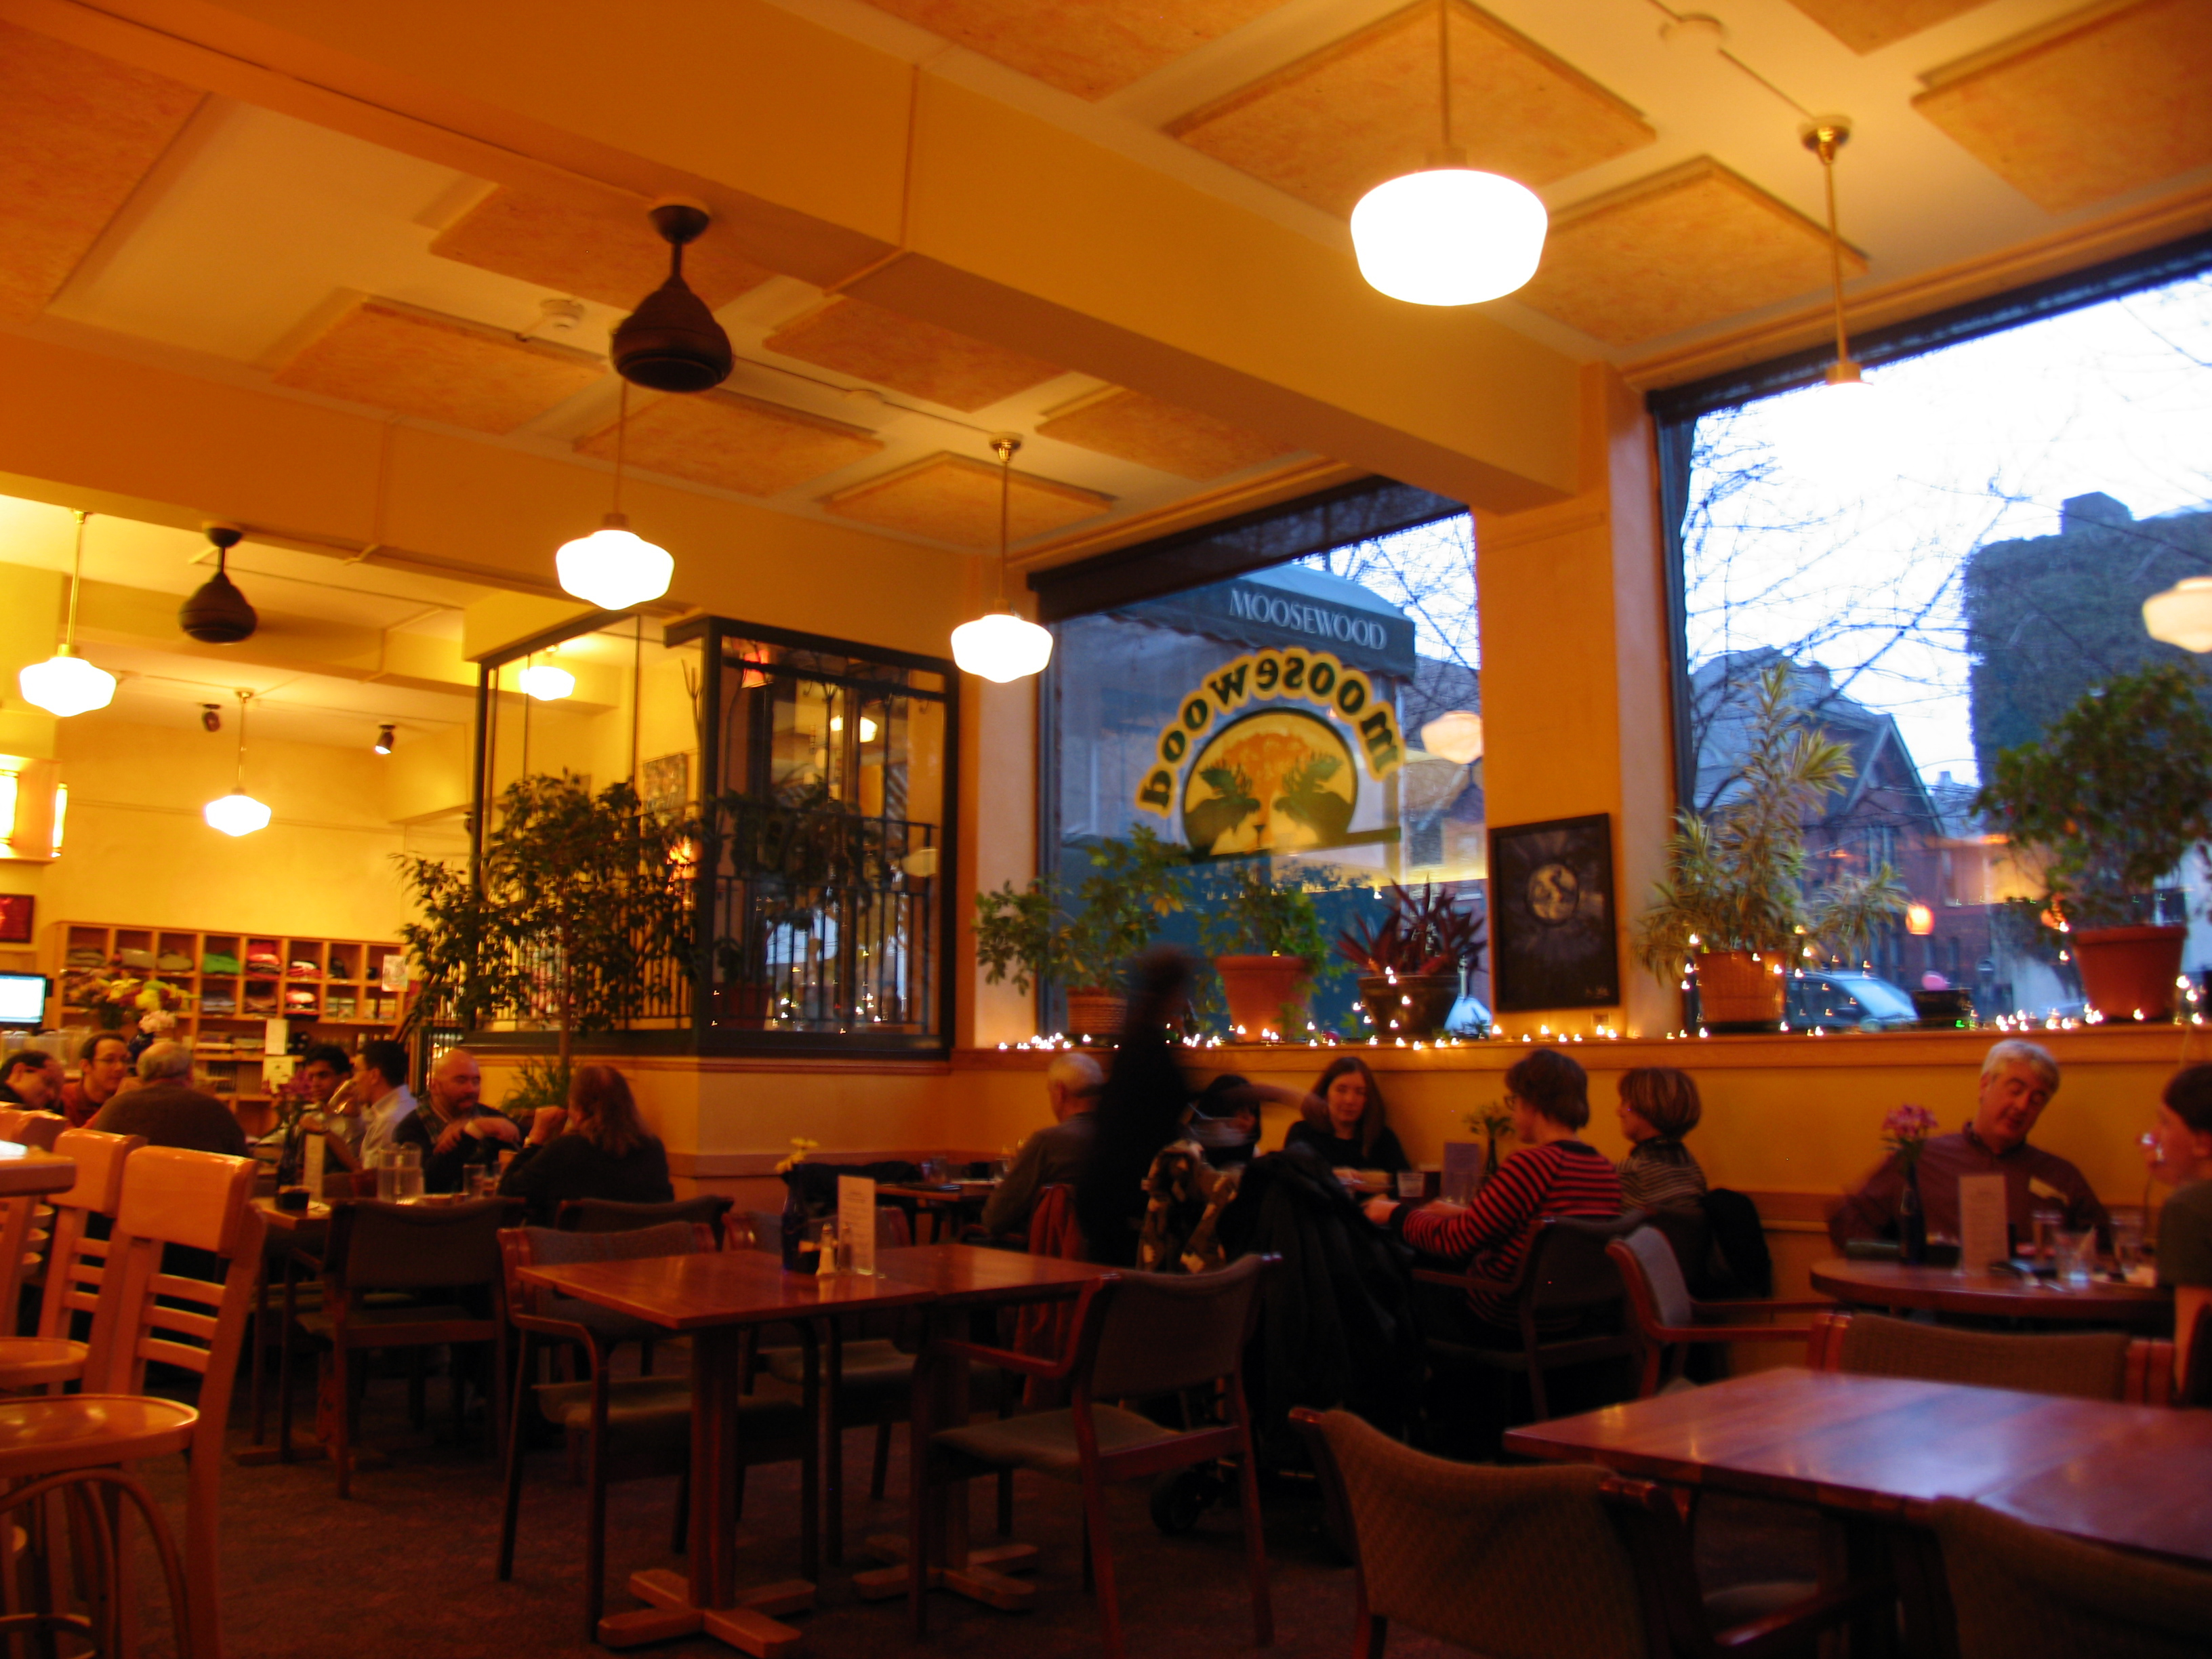 Road food report moosewood is a meat glue free zone - Chow chow restaurante ...